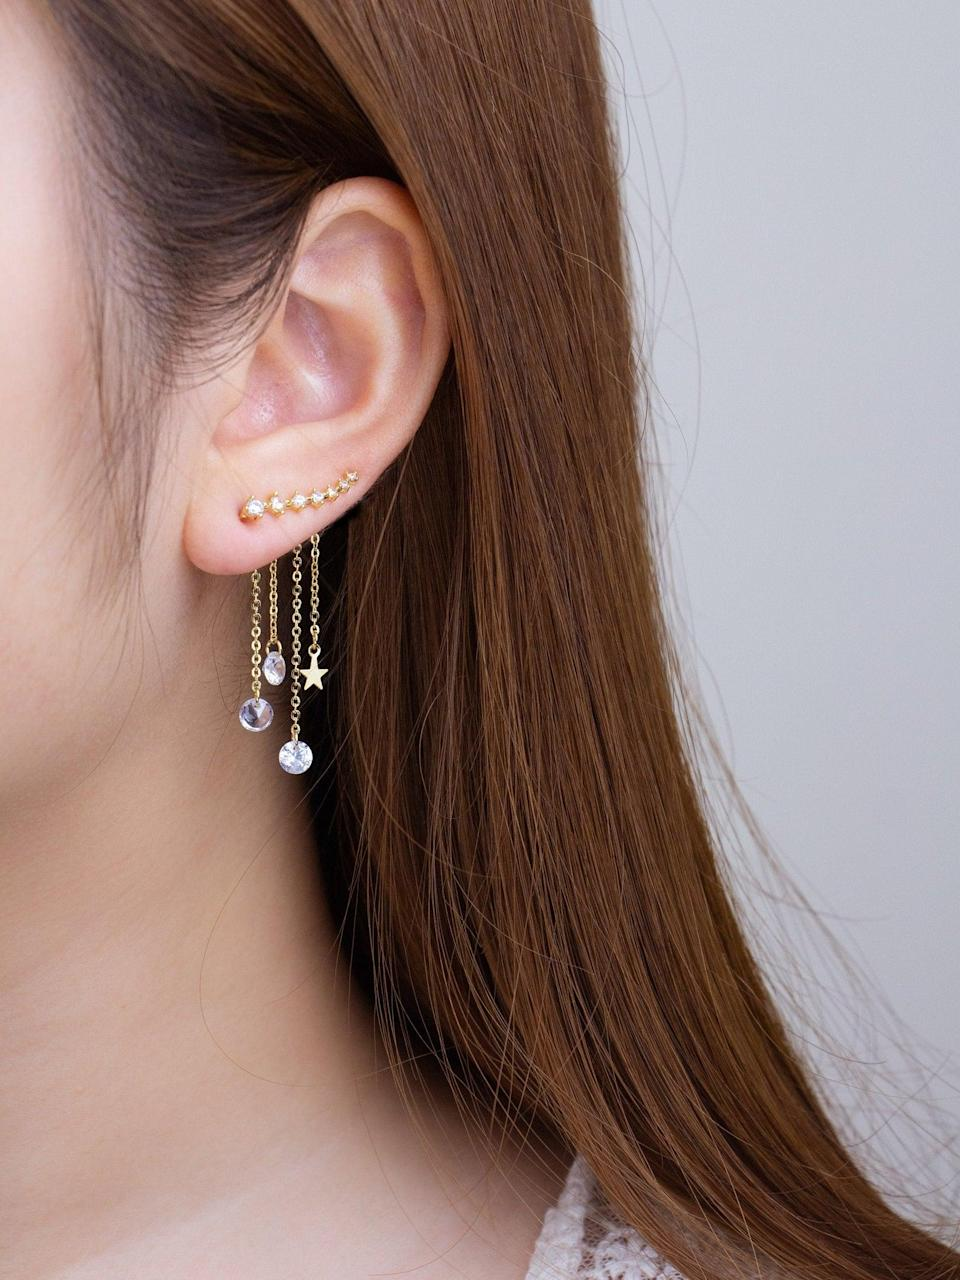 <p>We're absolutely in love with these unique <span>Two-Way Gold Star Ear Climber Earrings With Crystal Chain</span> ($15, originally $21). It's so glamorous and whimsical. They can wear the ear climber by itself or with the drop detailing.</p>